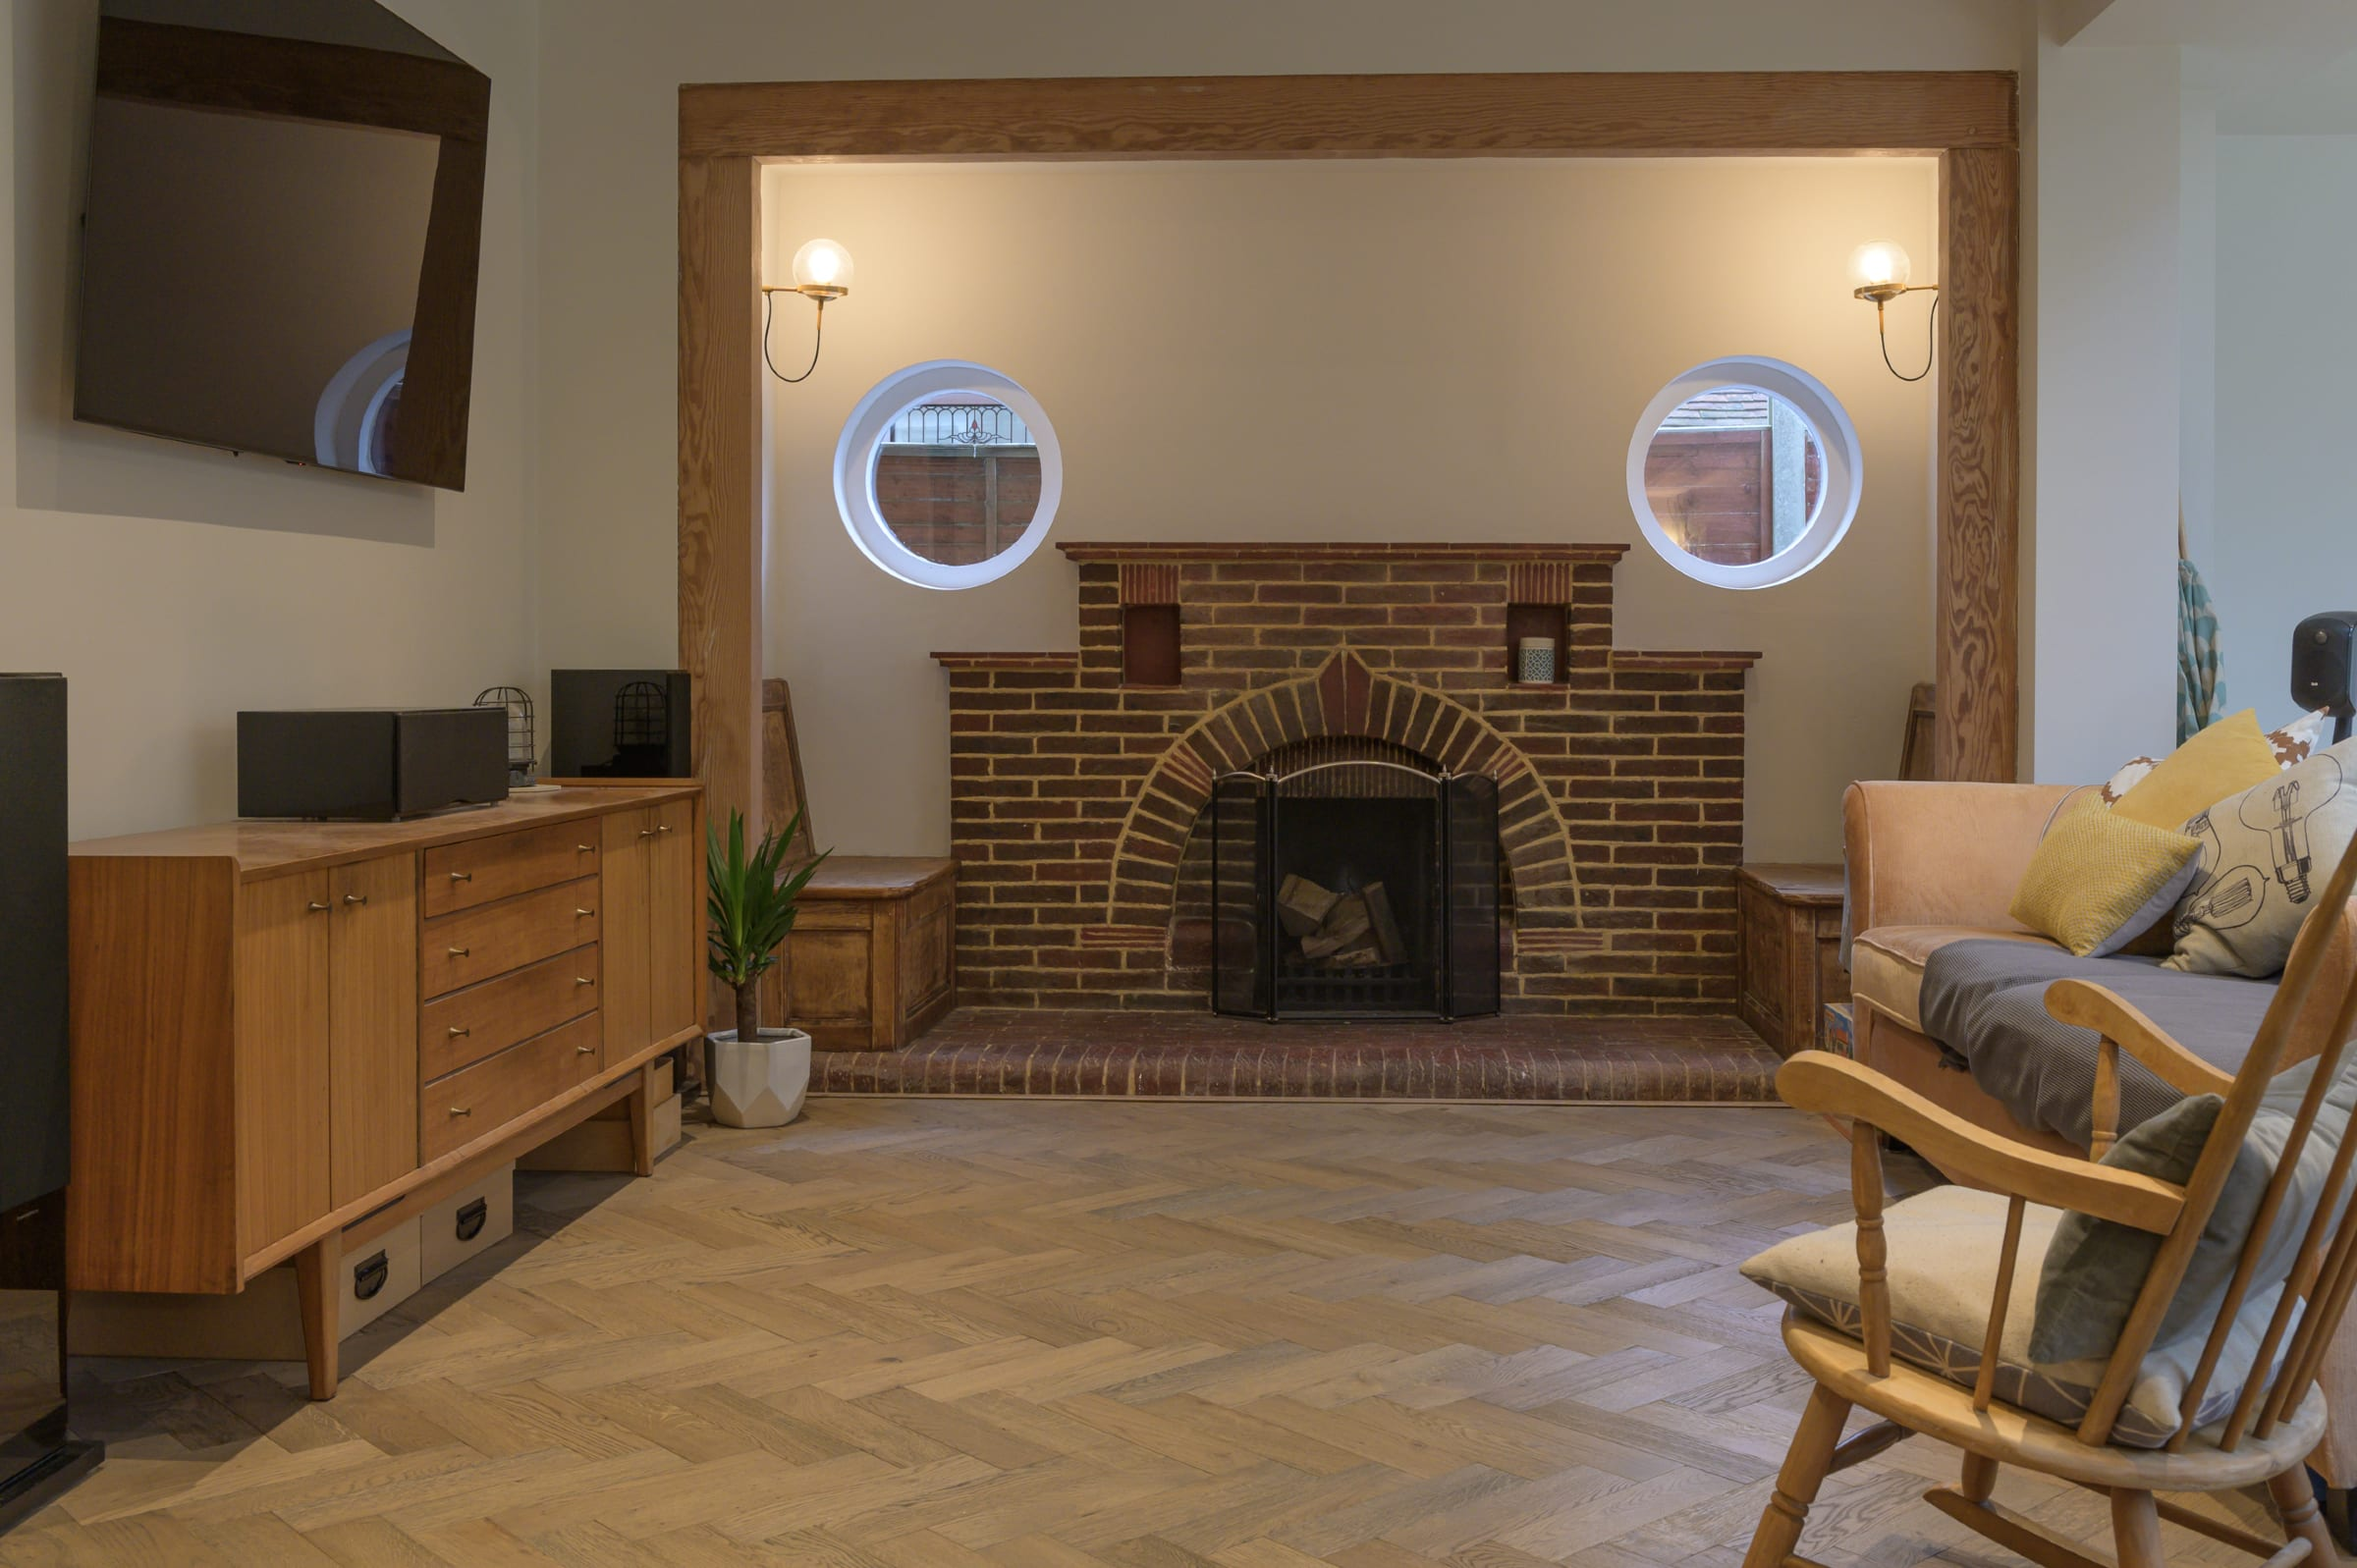 brick fireplace and herringbone wood floors